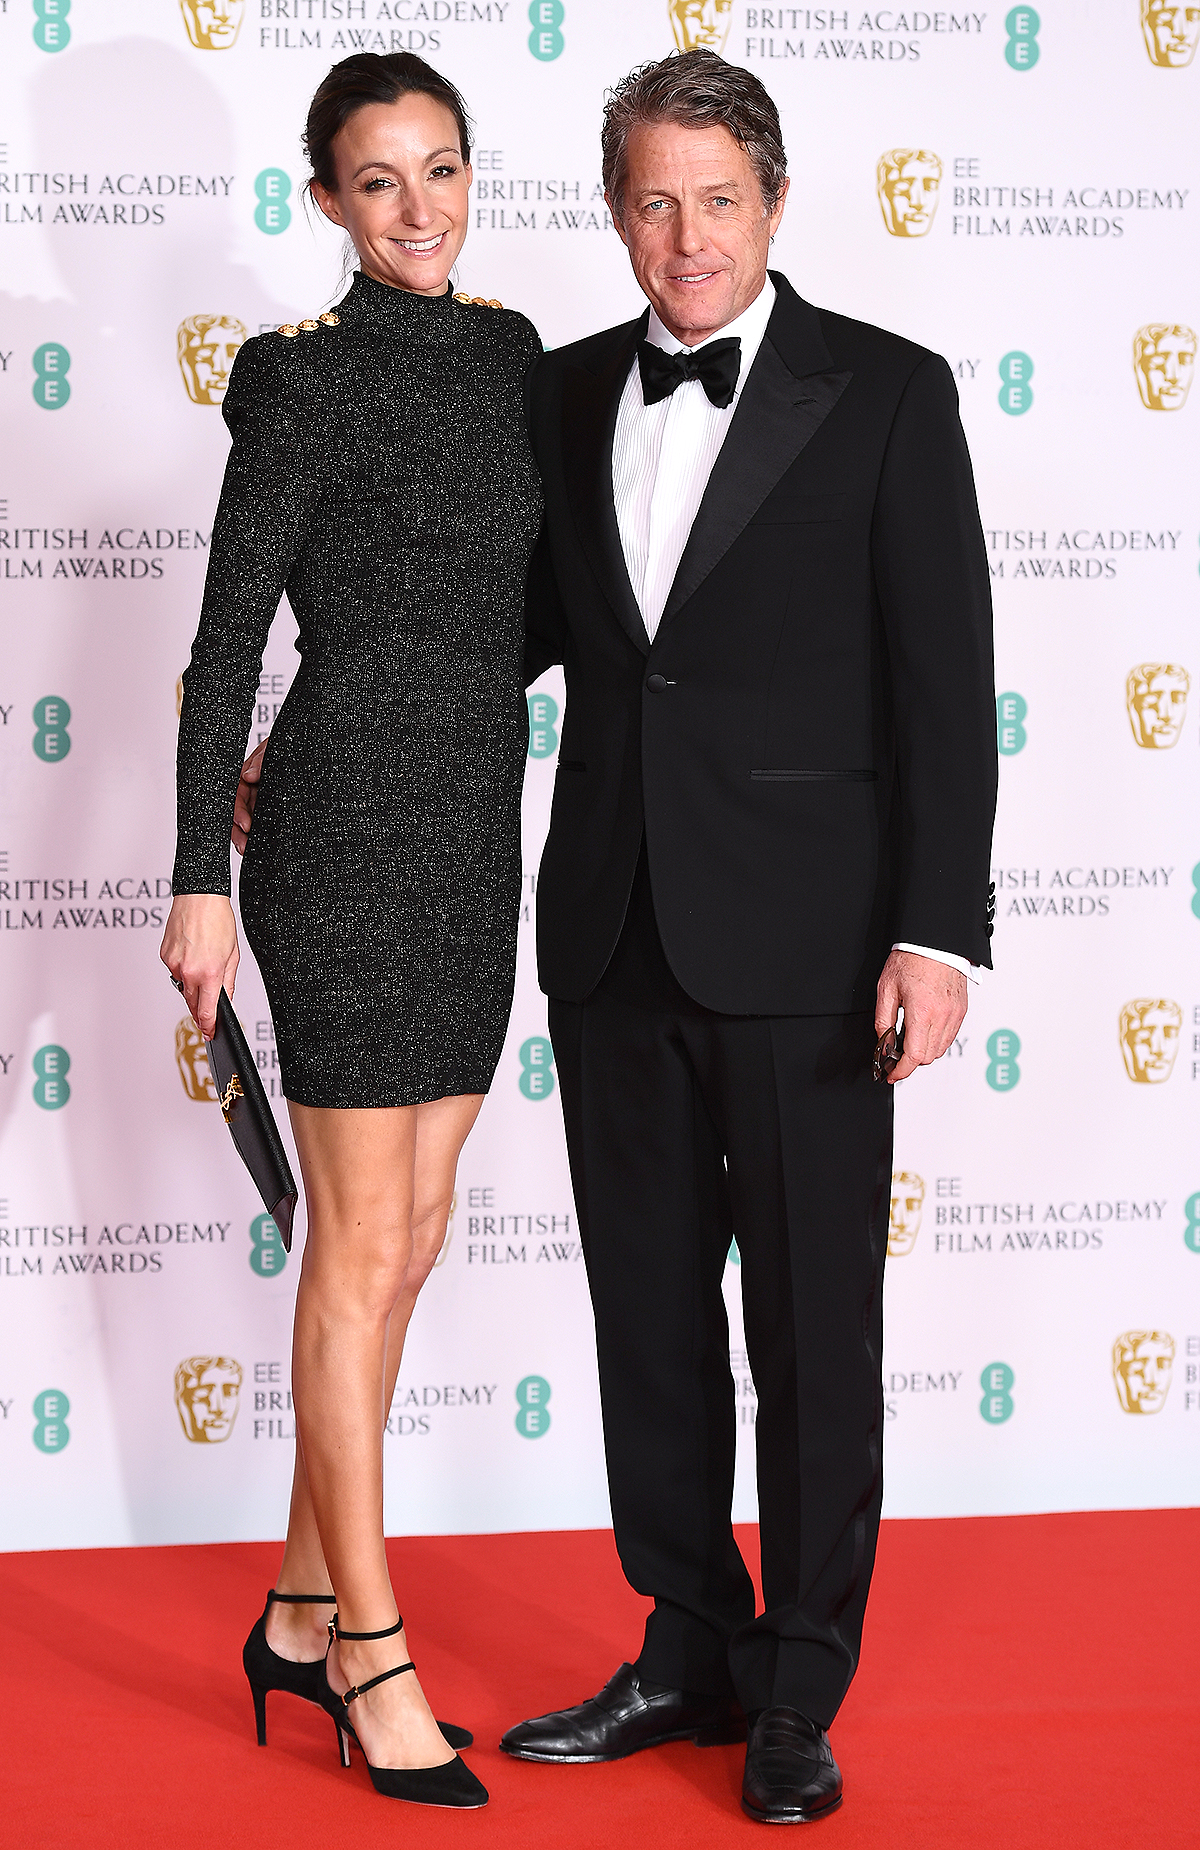 Hugh Grant and wife Anna Elisabet Eberstein attends the EE British Academy Film Awards 2021 at the Royal Albert Hall on April 11, 2021